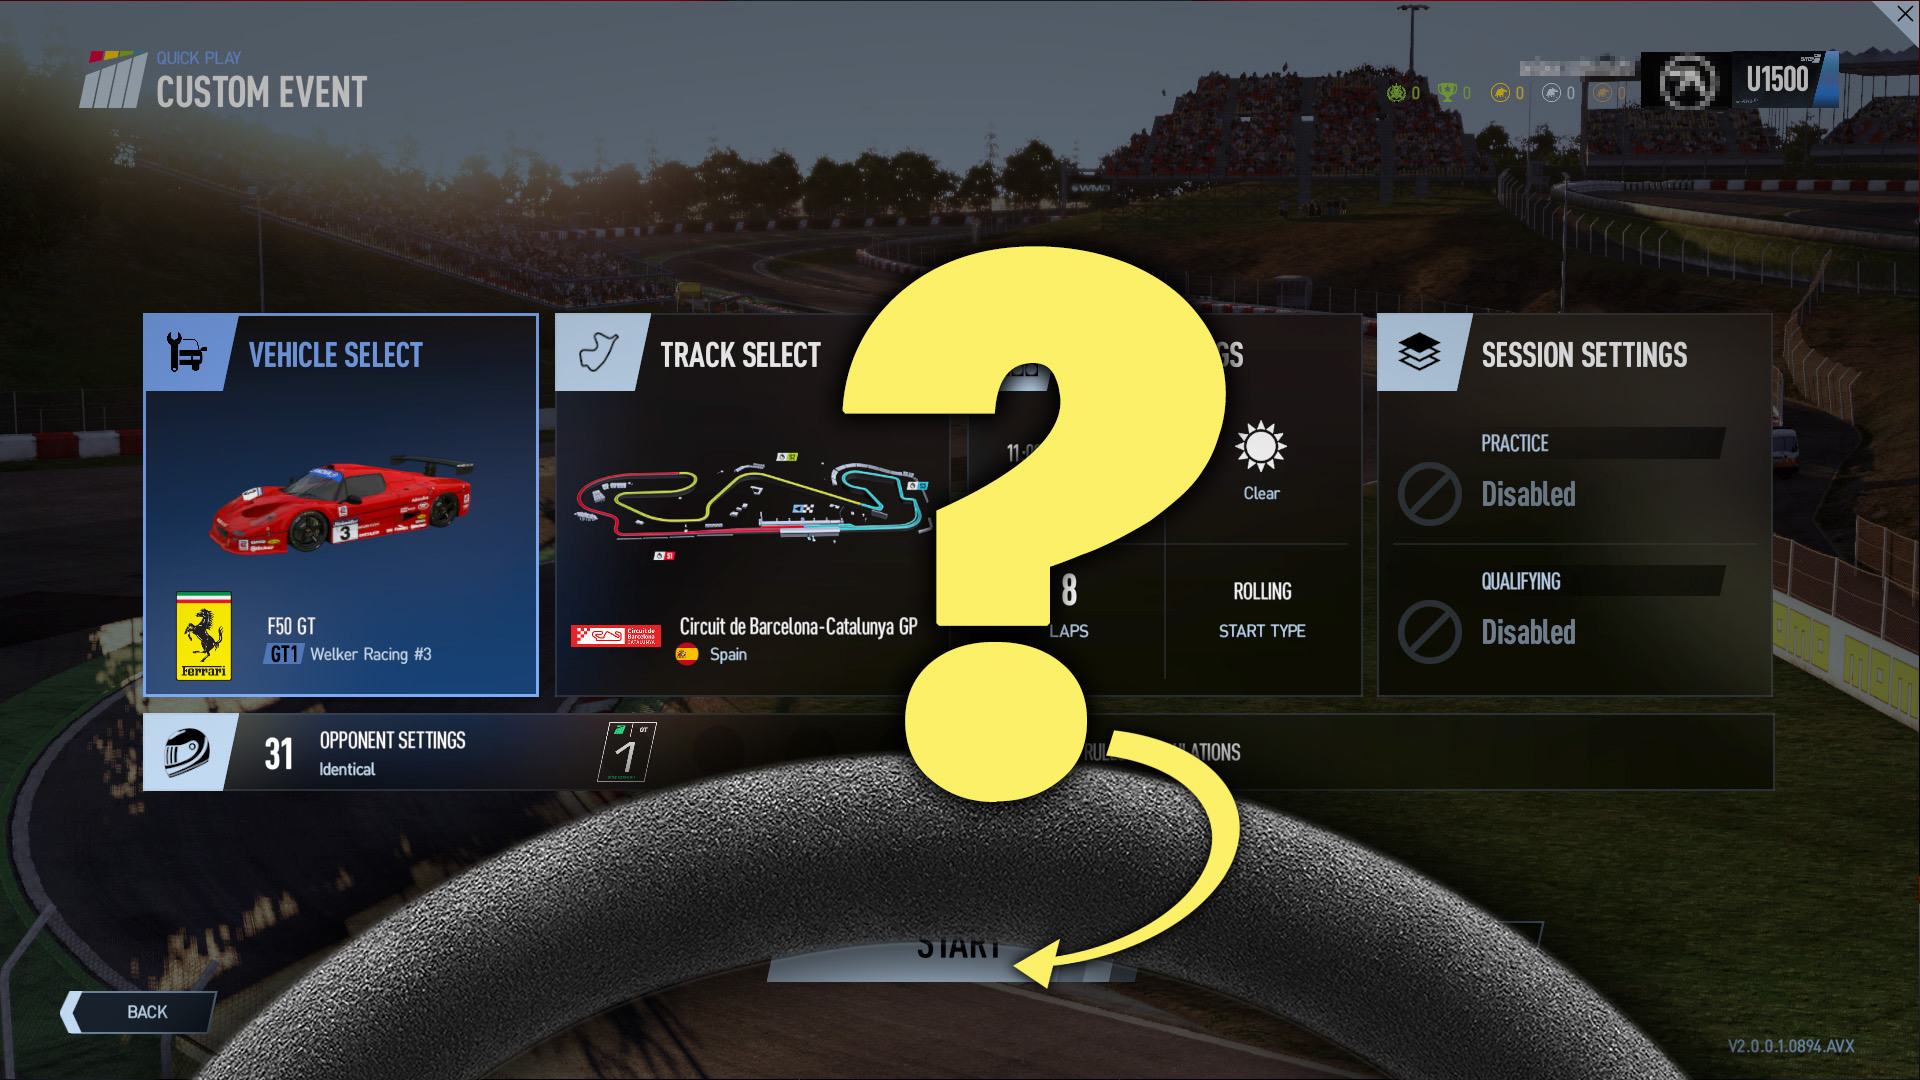 Designing a UI for Racing Games? Here's 5 tips.